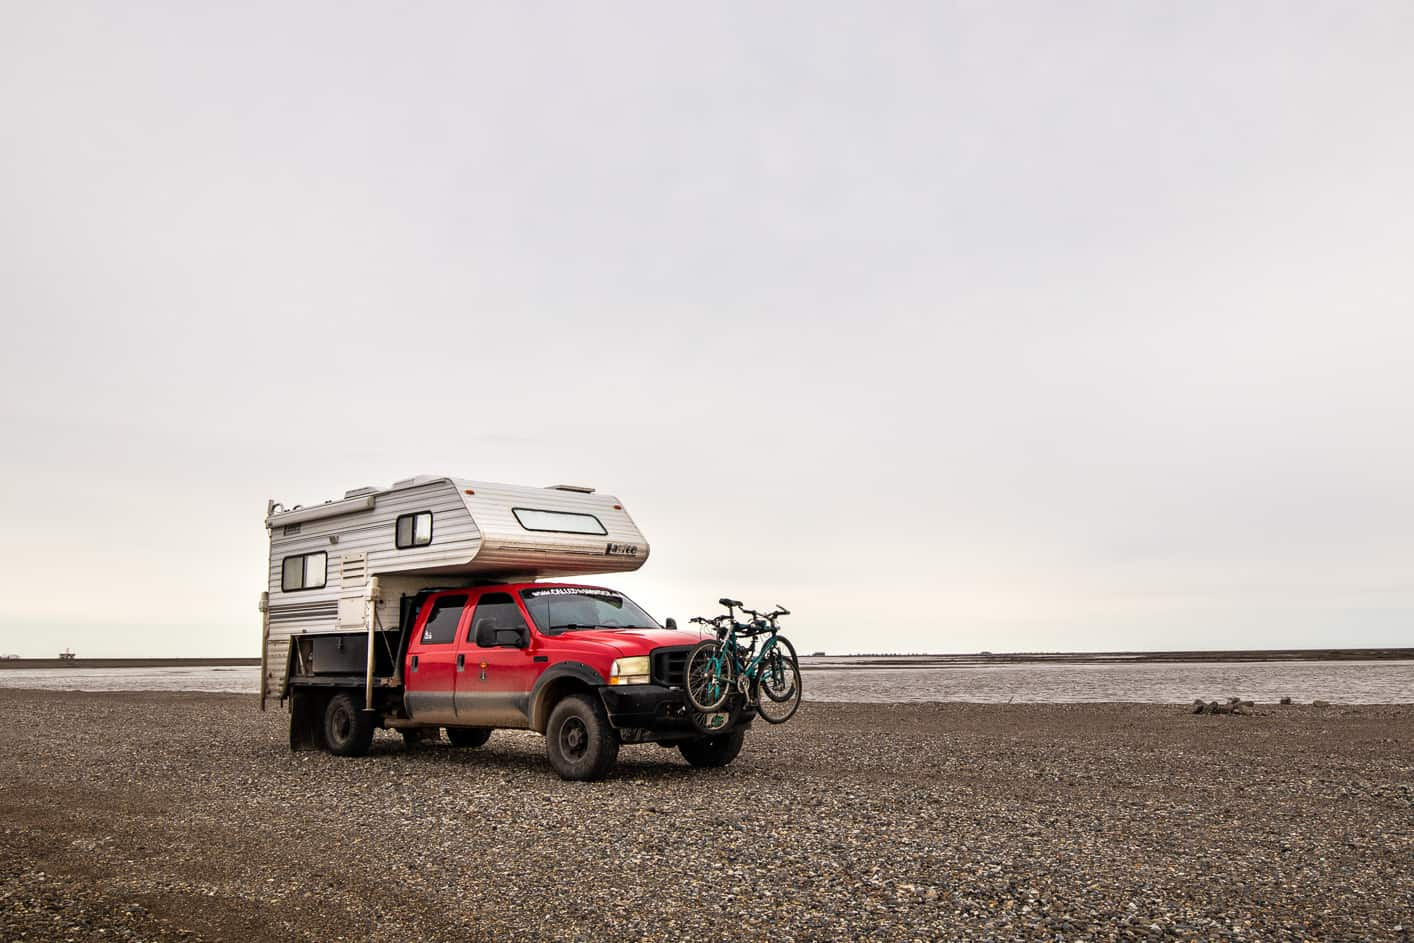 Boondocking in our rv at Deadhorse